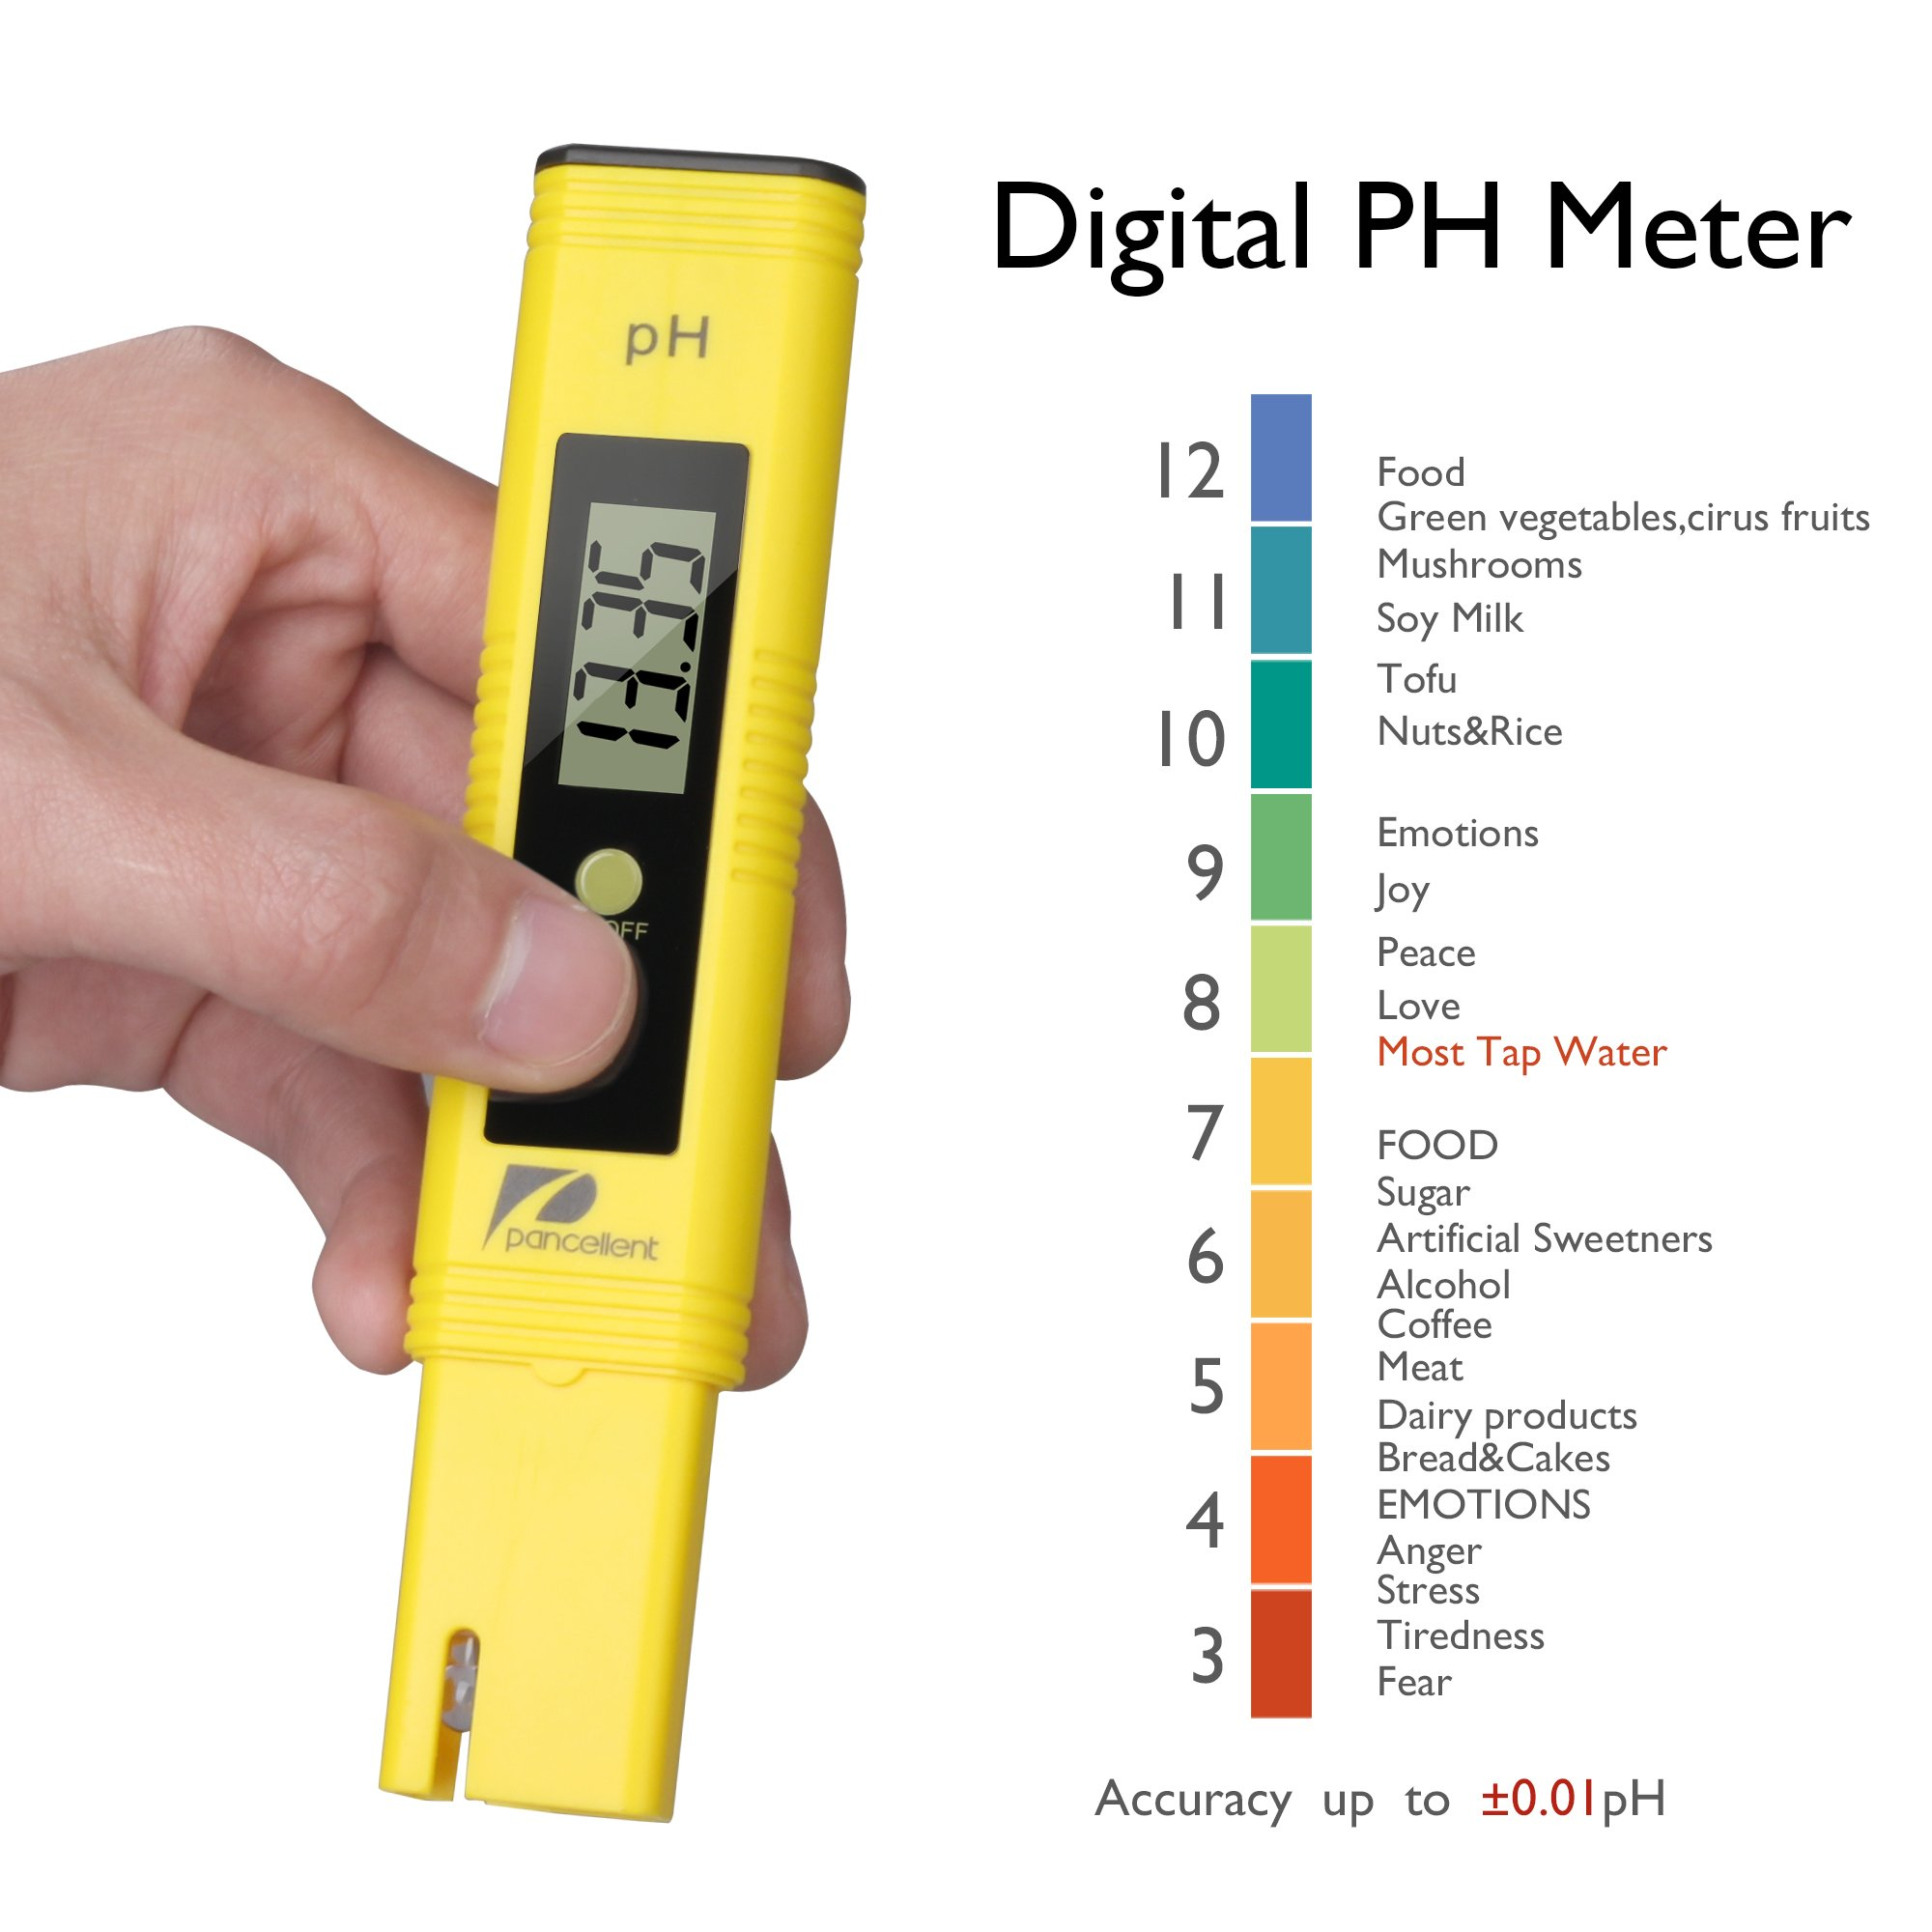 Water Quality Test Meter Pancellent EC PH 2 in 1 Kit 0-9990us/cm Electrical Conductivity 0.01pH Resolution 0.01pH Accuracy by Pancellent (Image #5)